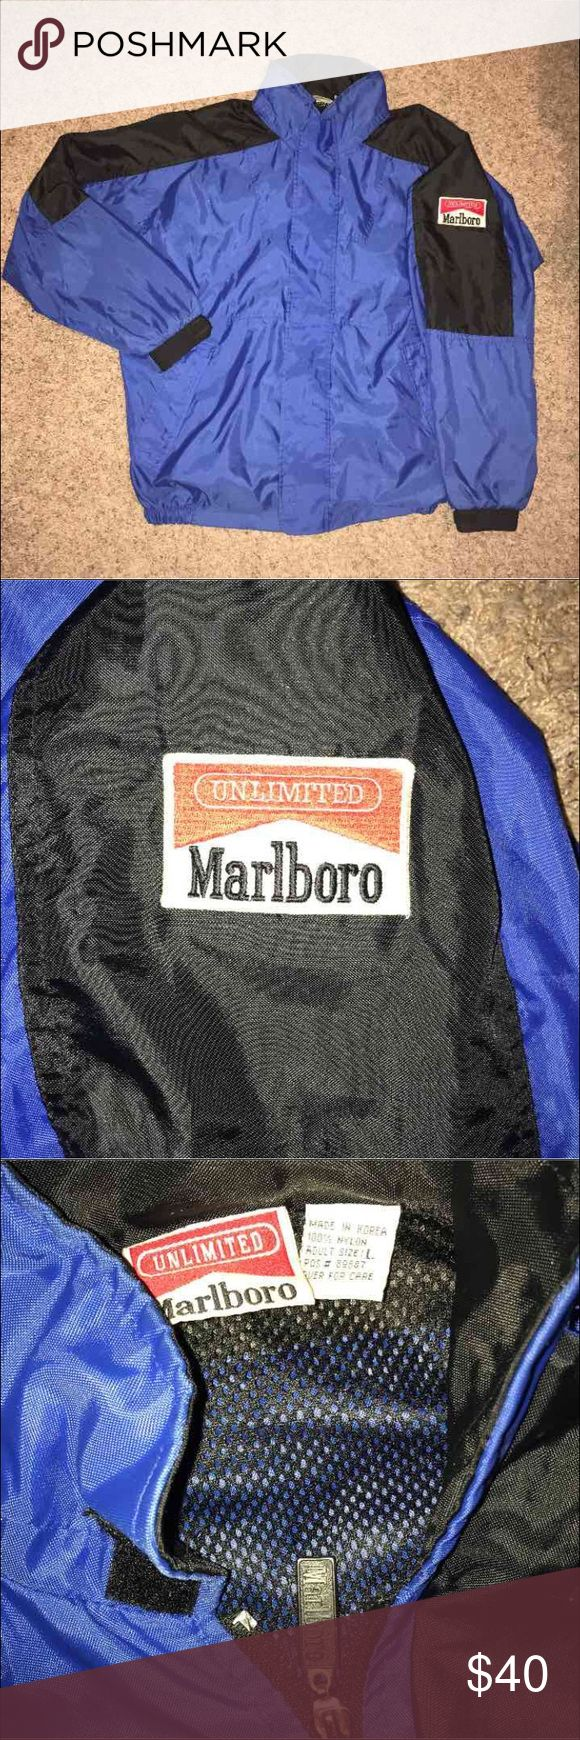 Vintage 90s Marlboro Jacket Adventure Team | 8.5/10 no flaws | L Marlboro Jackets & Coats Performance Jackets